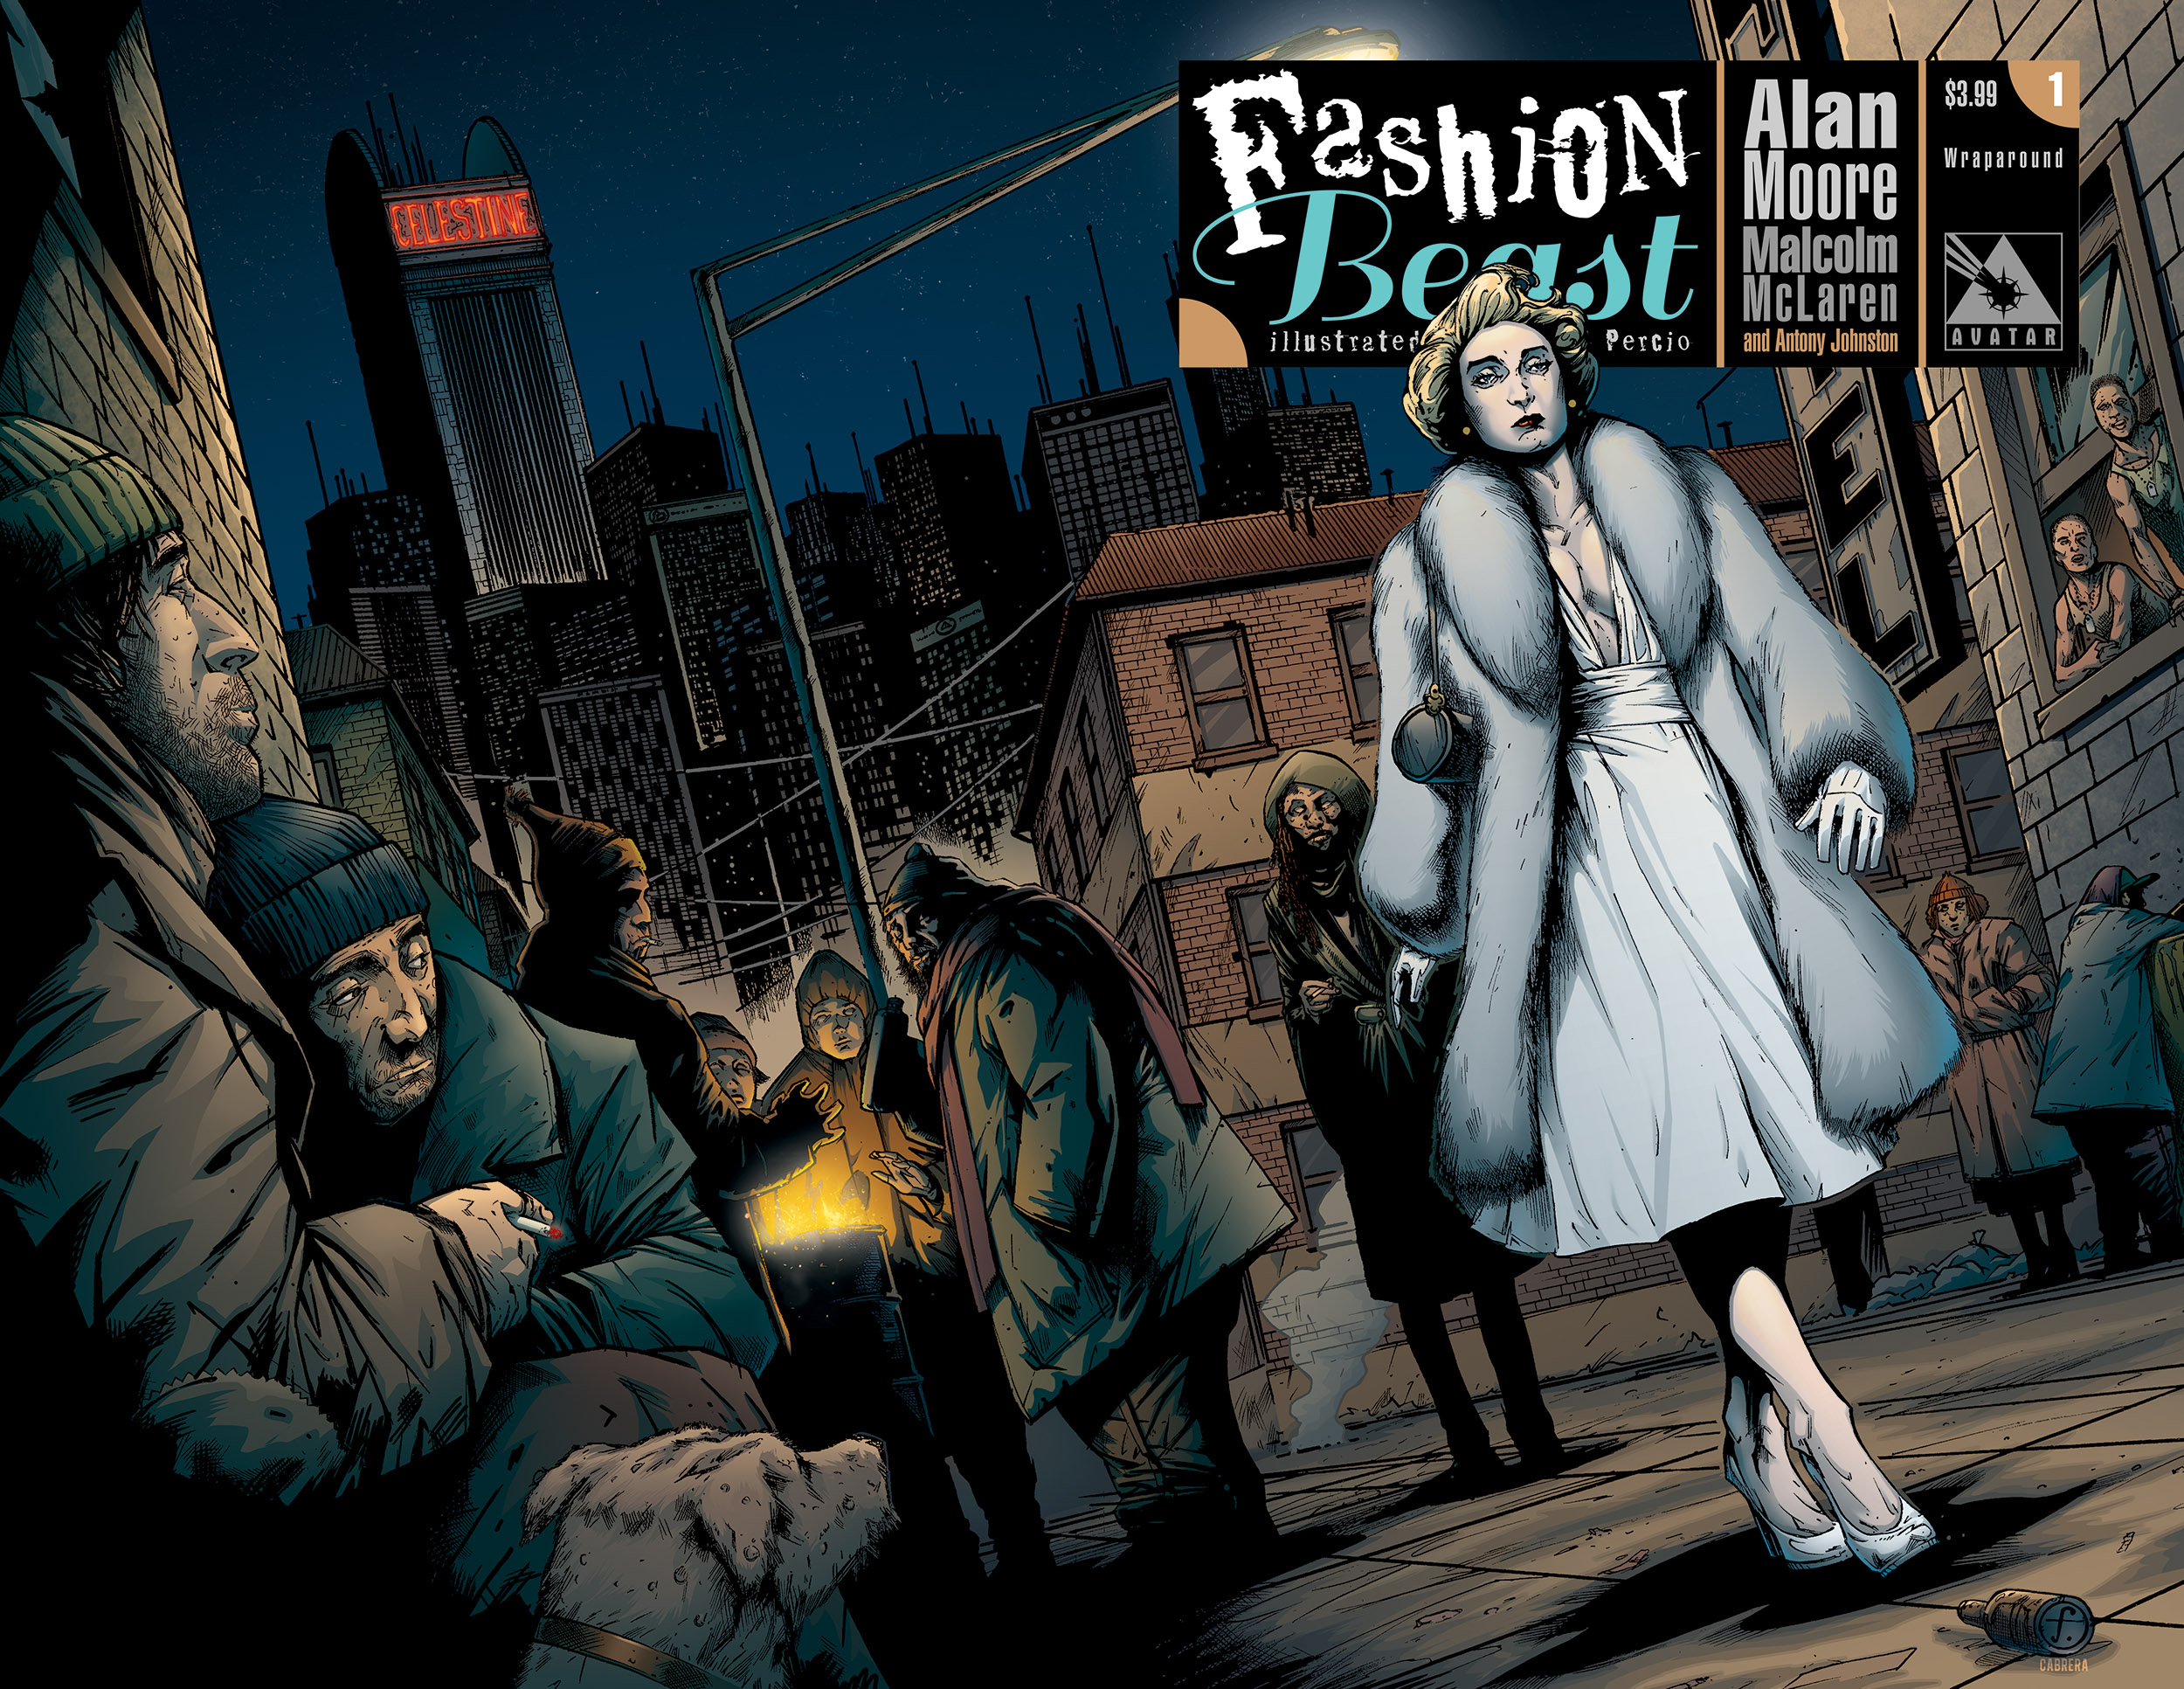 FashionBeast1wrap First Issue Collectors Item: Fashion Beast #1 (2012)